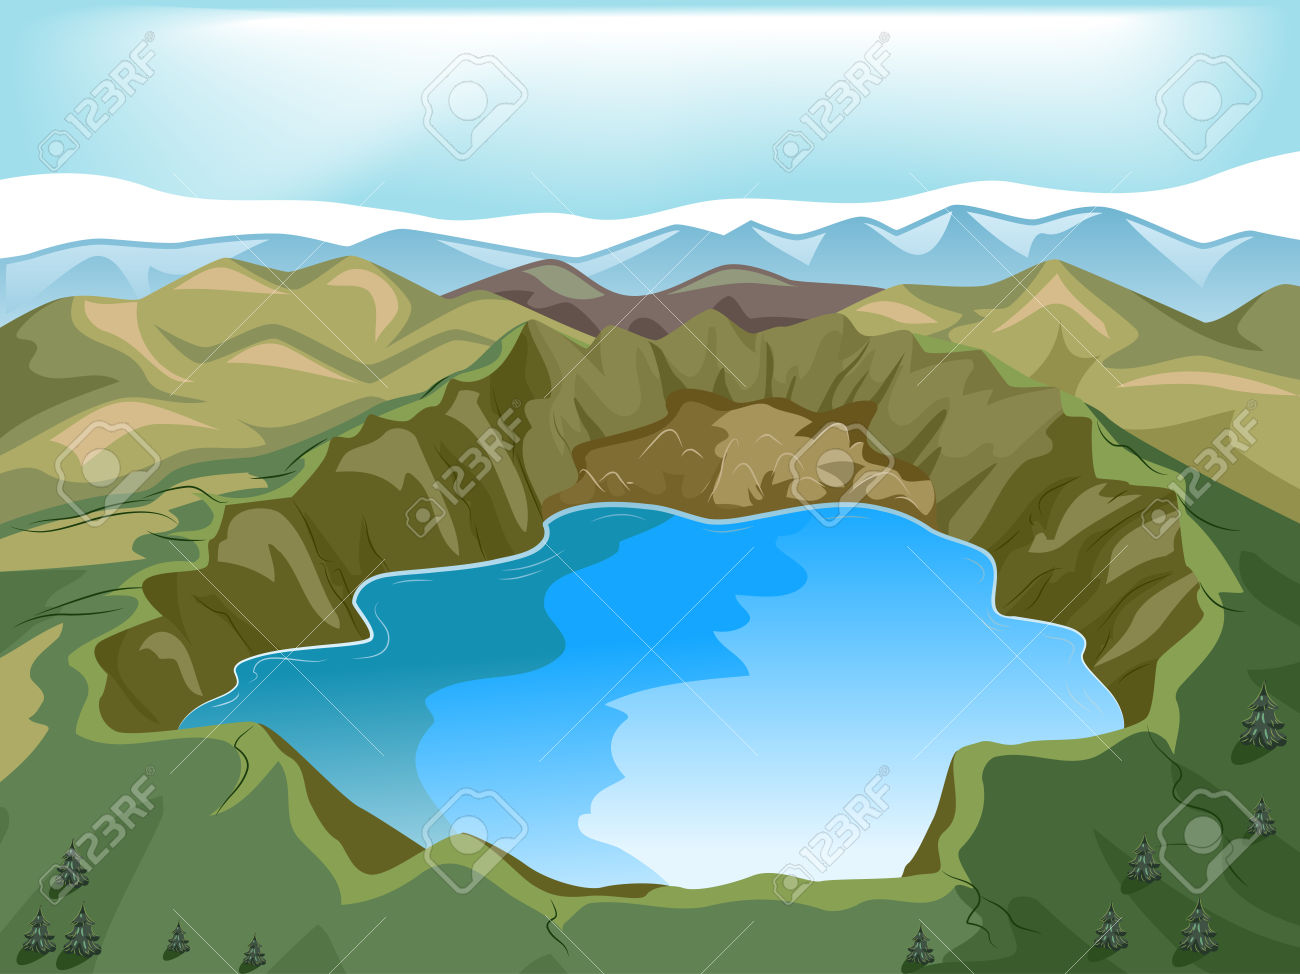 lake clipart - photo #33